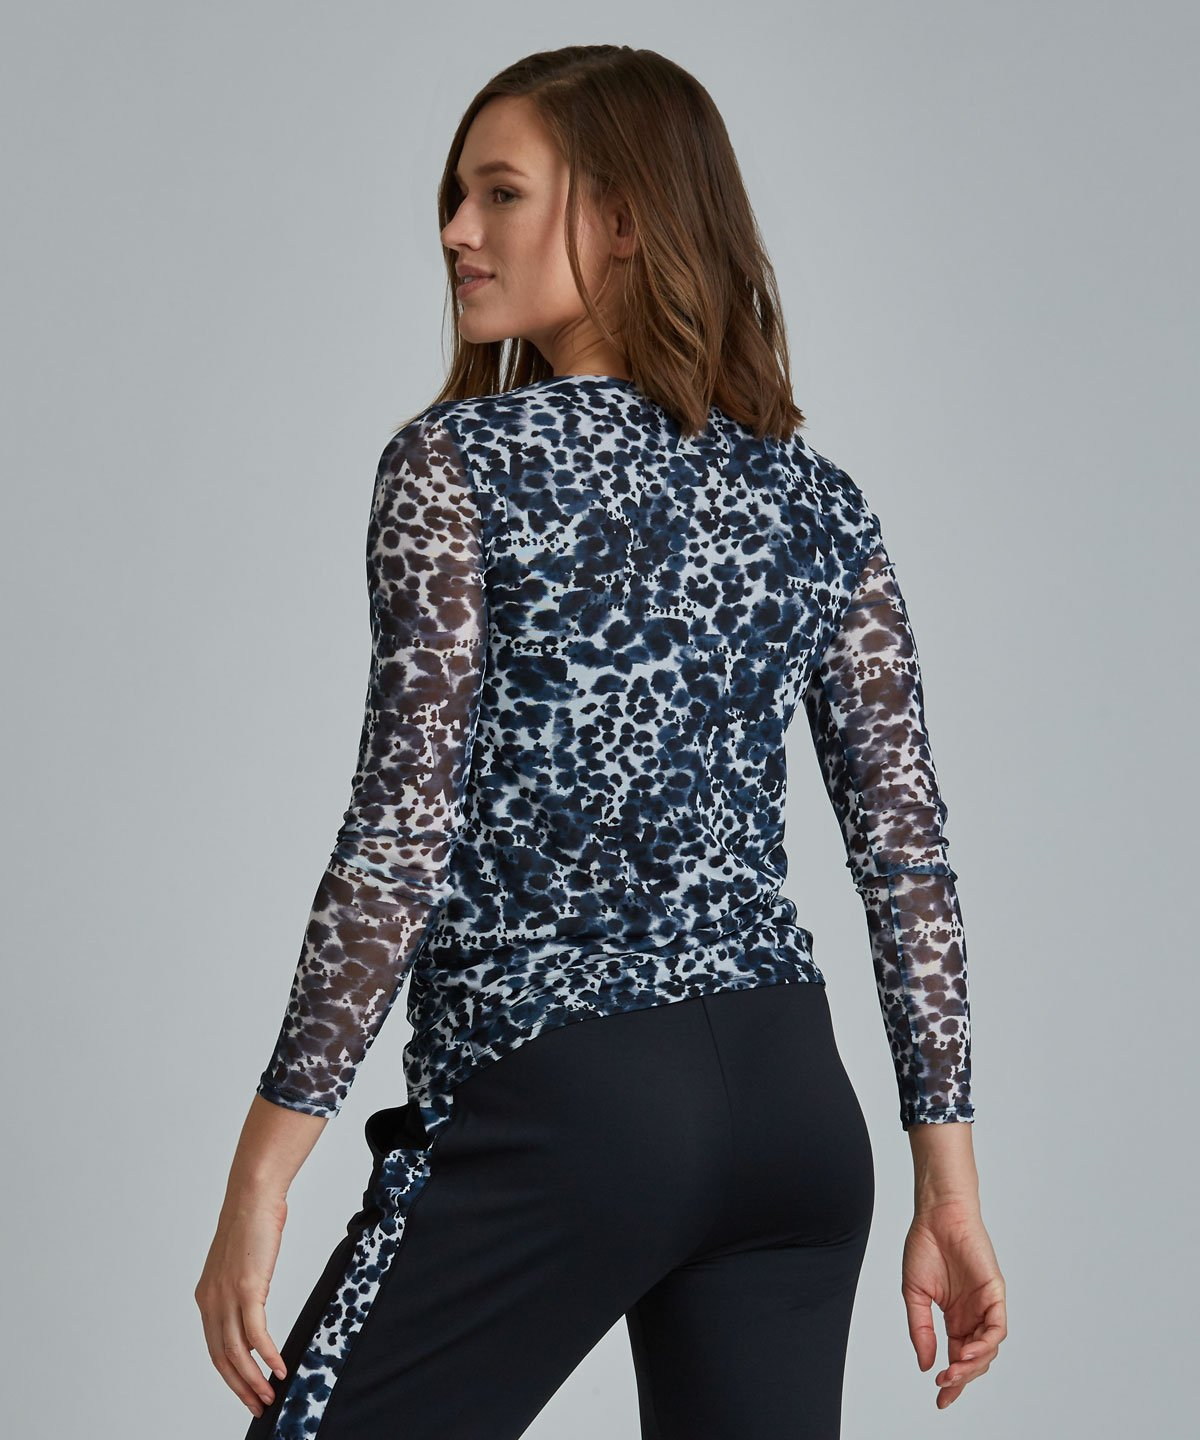 Emma Mesh Long Sleeve Tee - Leopard Blue Leopard Emma Mesh Long Sleeve Top - Women's Activewear Long Sleeve Top by PRISMSPORT